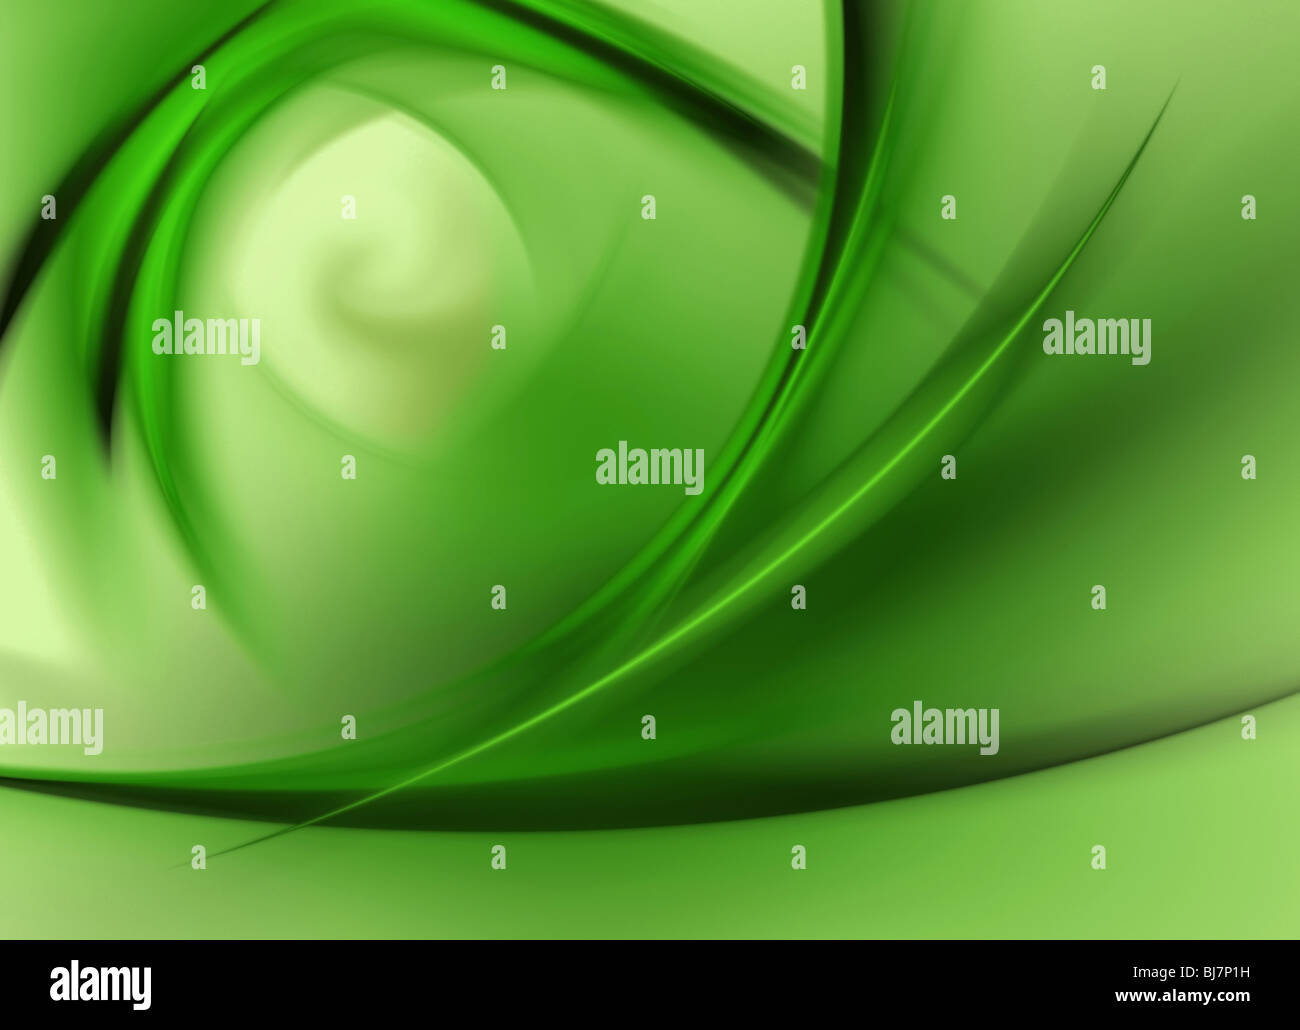 Abstract background Photo Stock